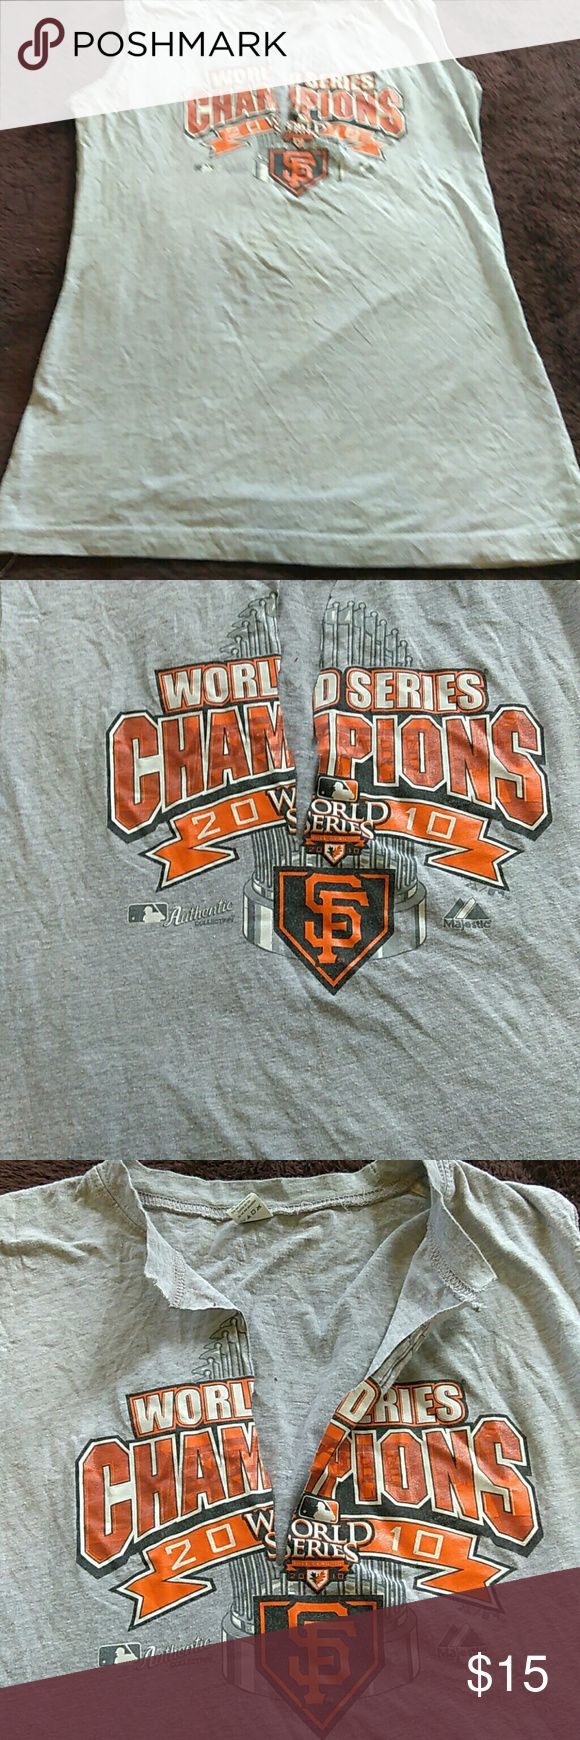 San Francisco Giants Authentic World Series tee 20 Nice tee Authentic Giants world series tee cut in the middle for comfort  World series  2010  for Giants fans go Giants let go !!!!!!!❤❤❤❤ Tultex Tops Tees - Short Sleeve